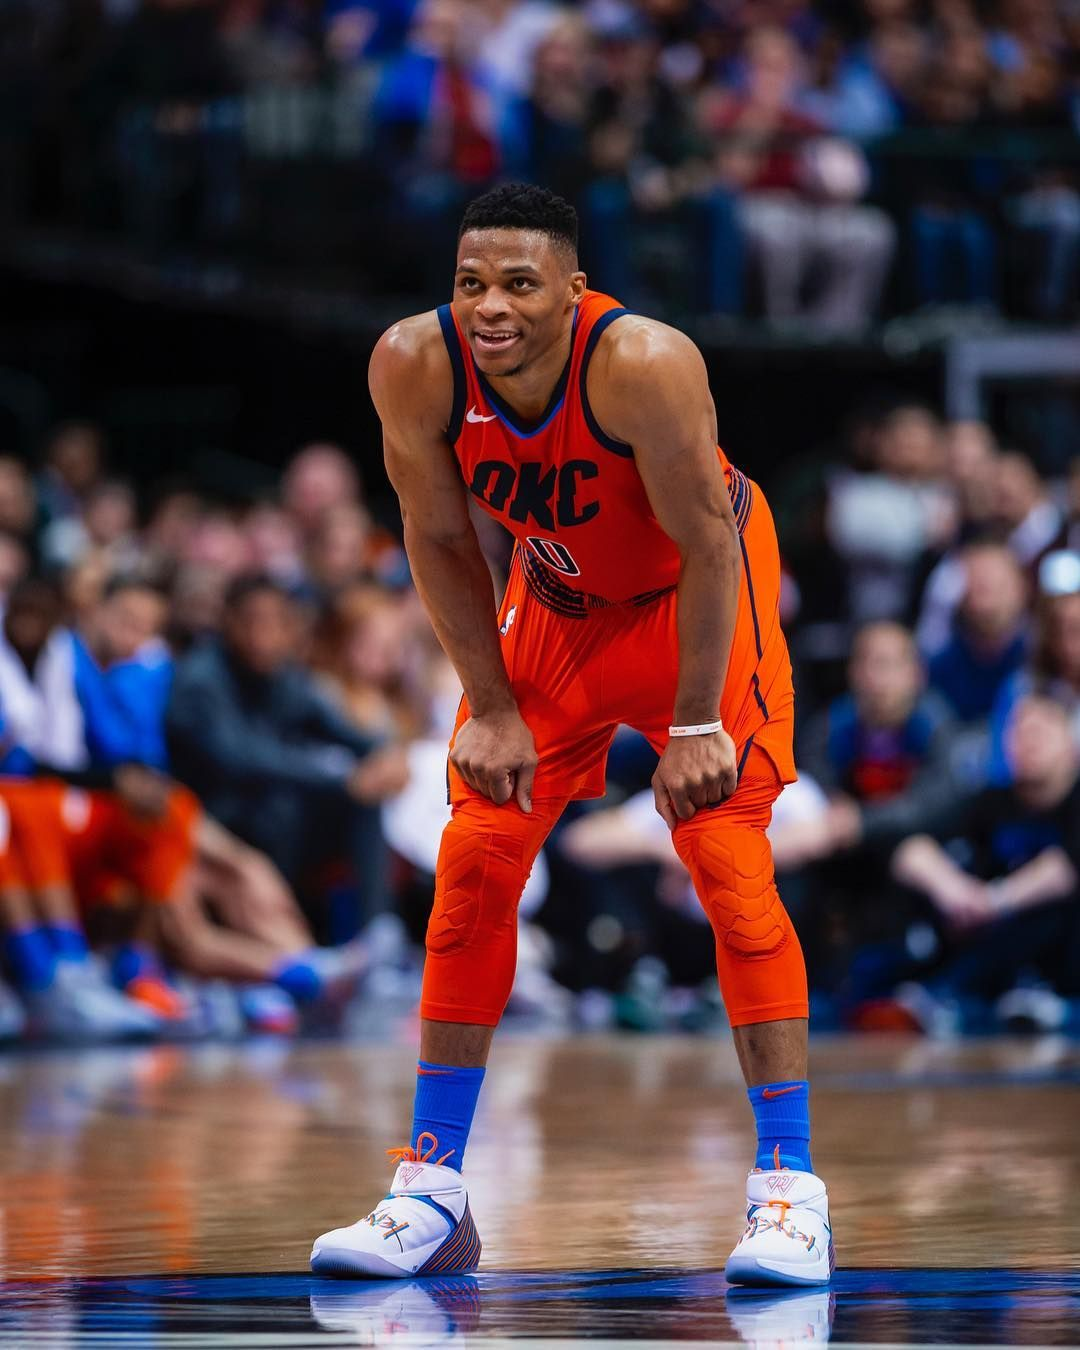 Russell Westbrook On Instagram Too Blessed To Be Stressed Whynot Workout Videos Basketball Highlights Westbrook